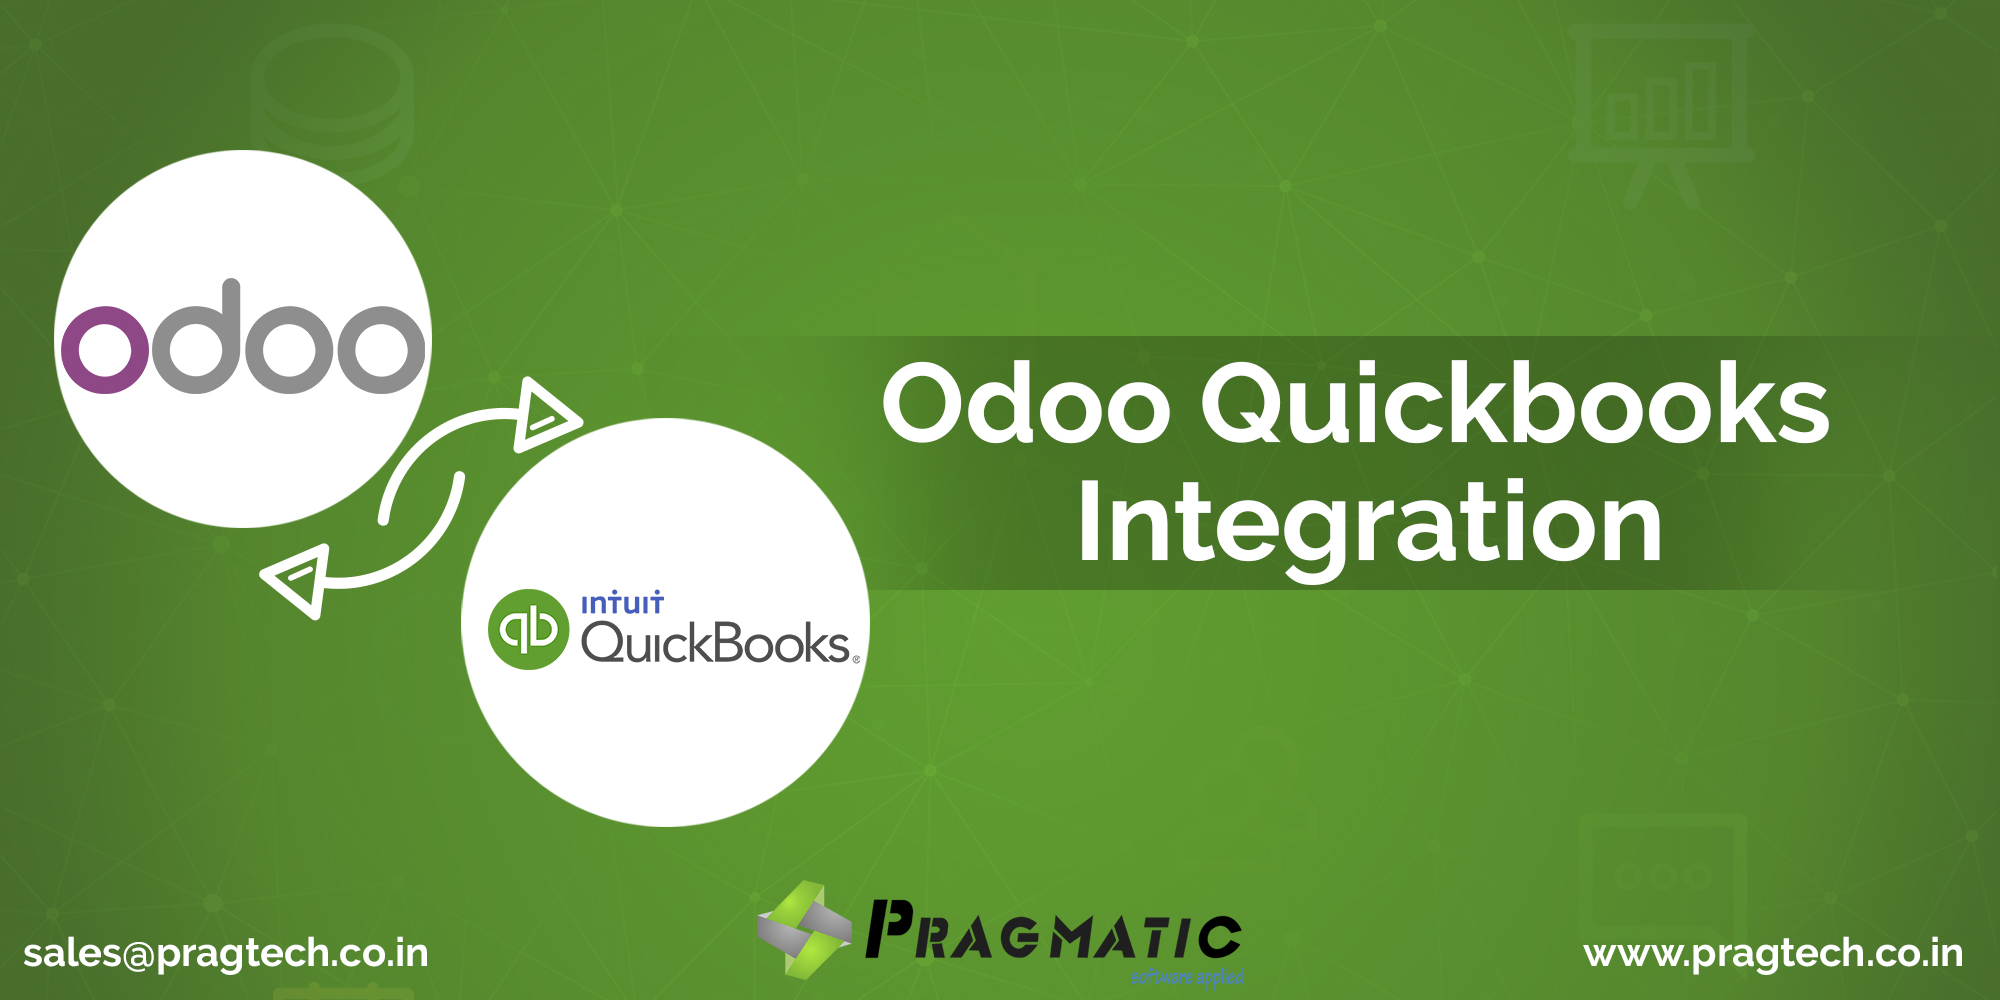 Odoo Quickbooks Integration